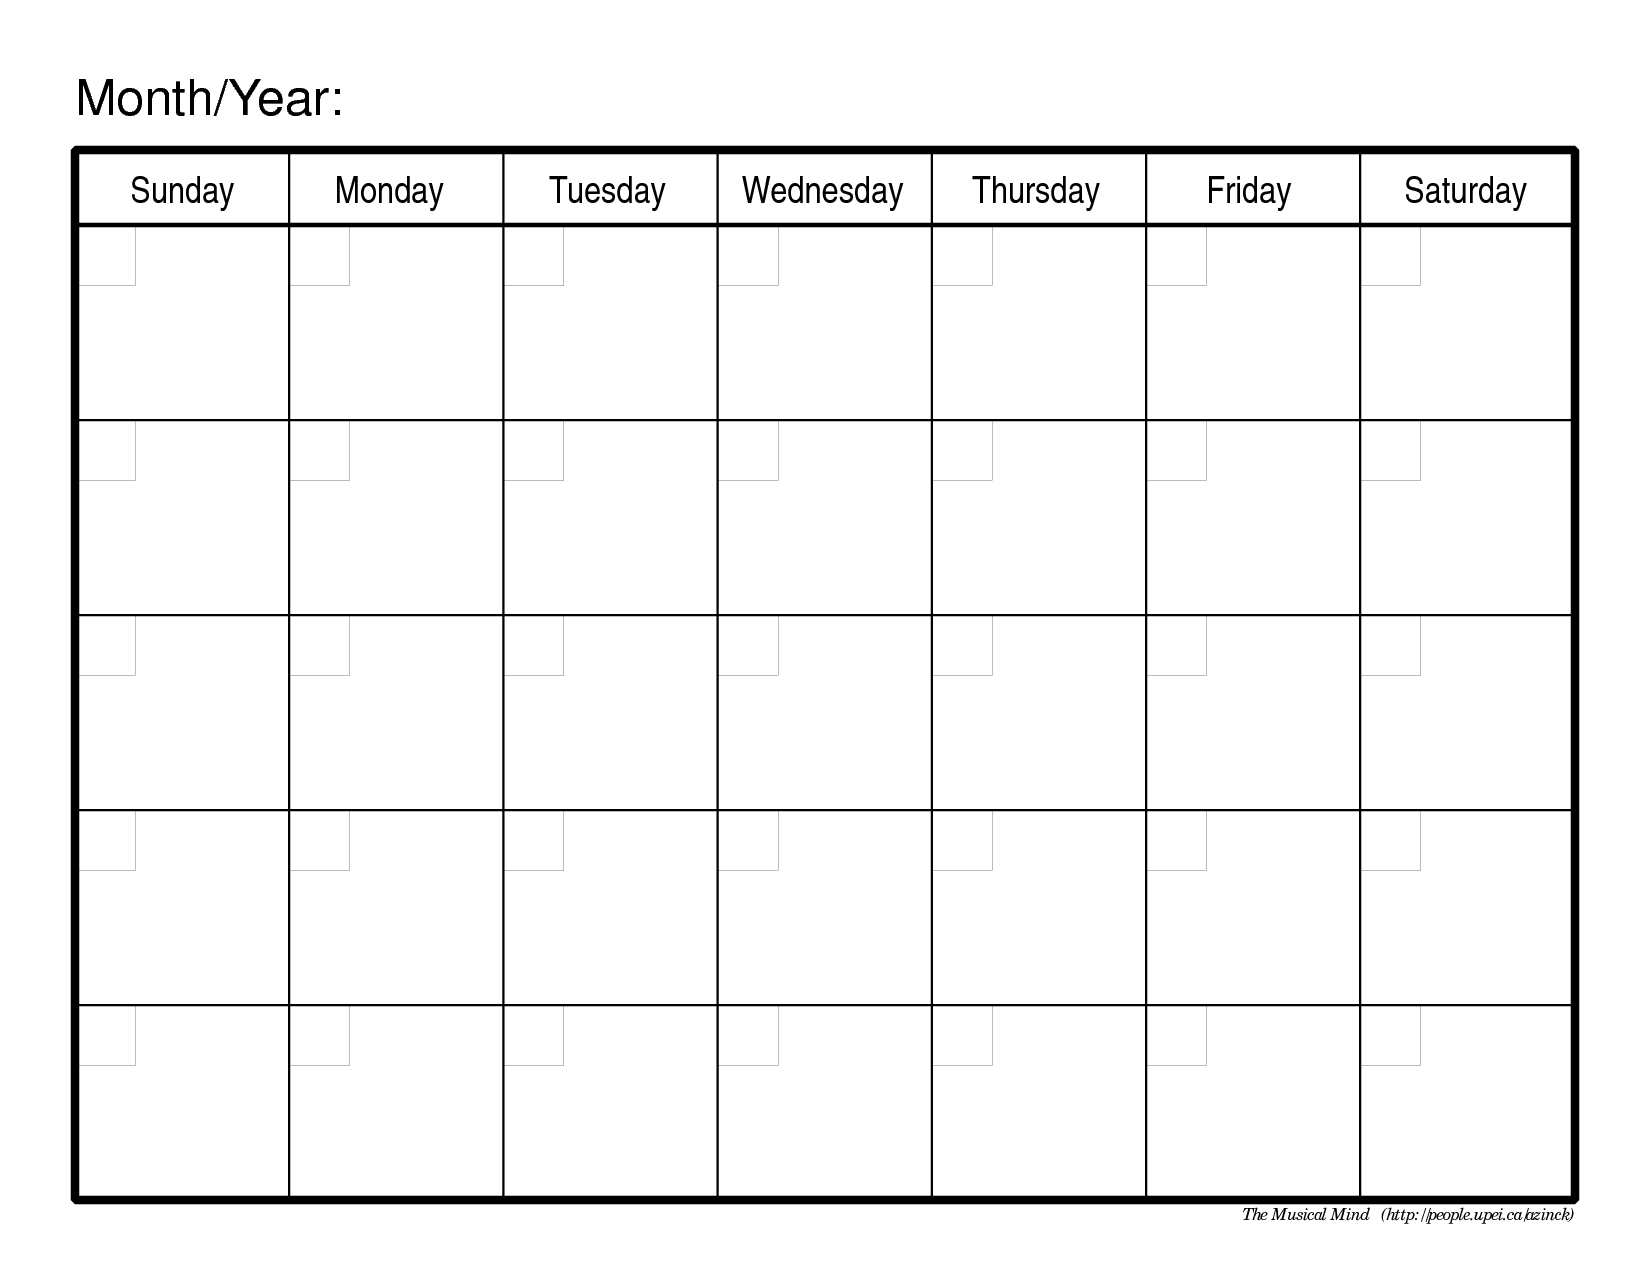 Free Monthly Schedule Template Calendars To Print Planner Word within Template For Calendar By Month